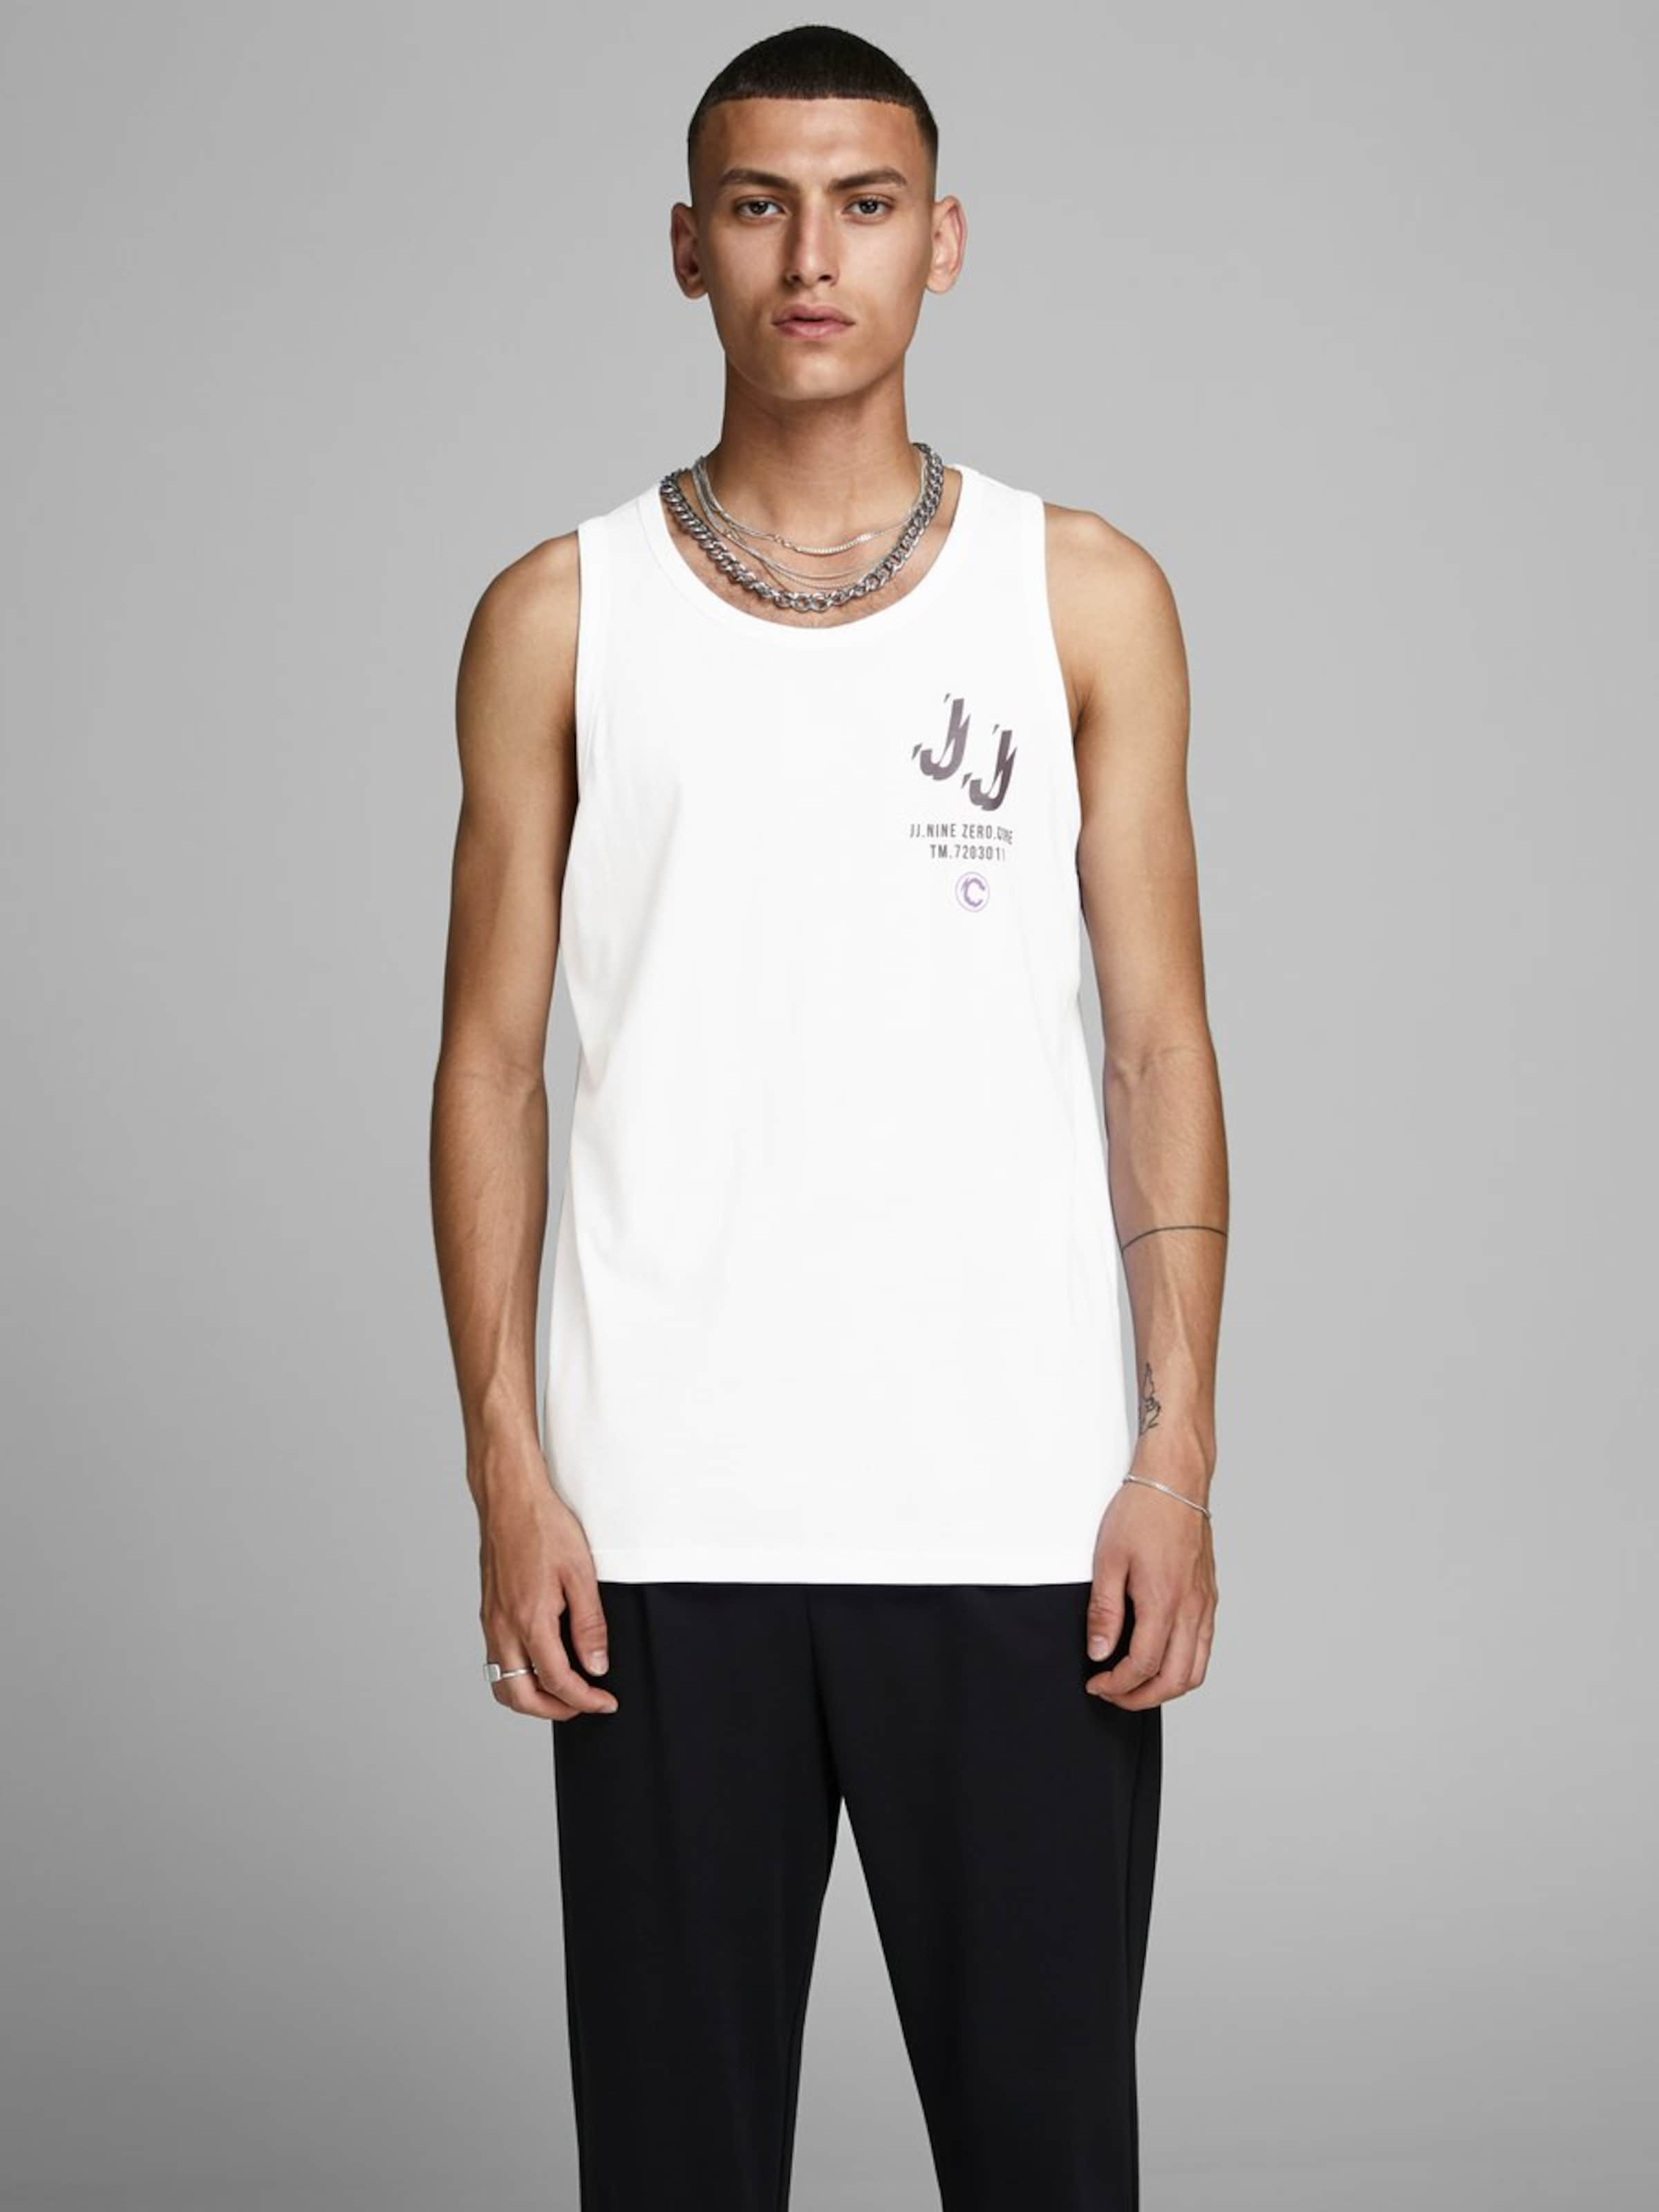 T Jones Jackamp; PourpreNoir Blanc shirt En yfb67IYgv